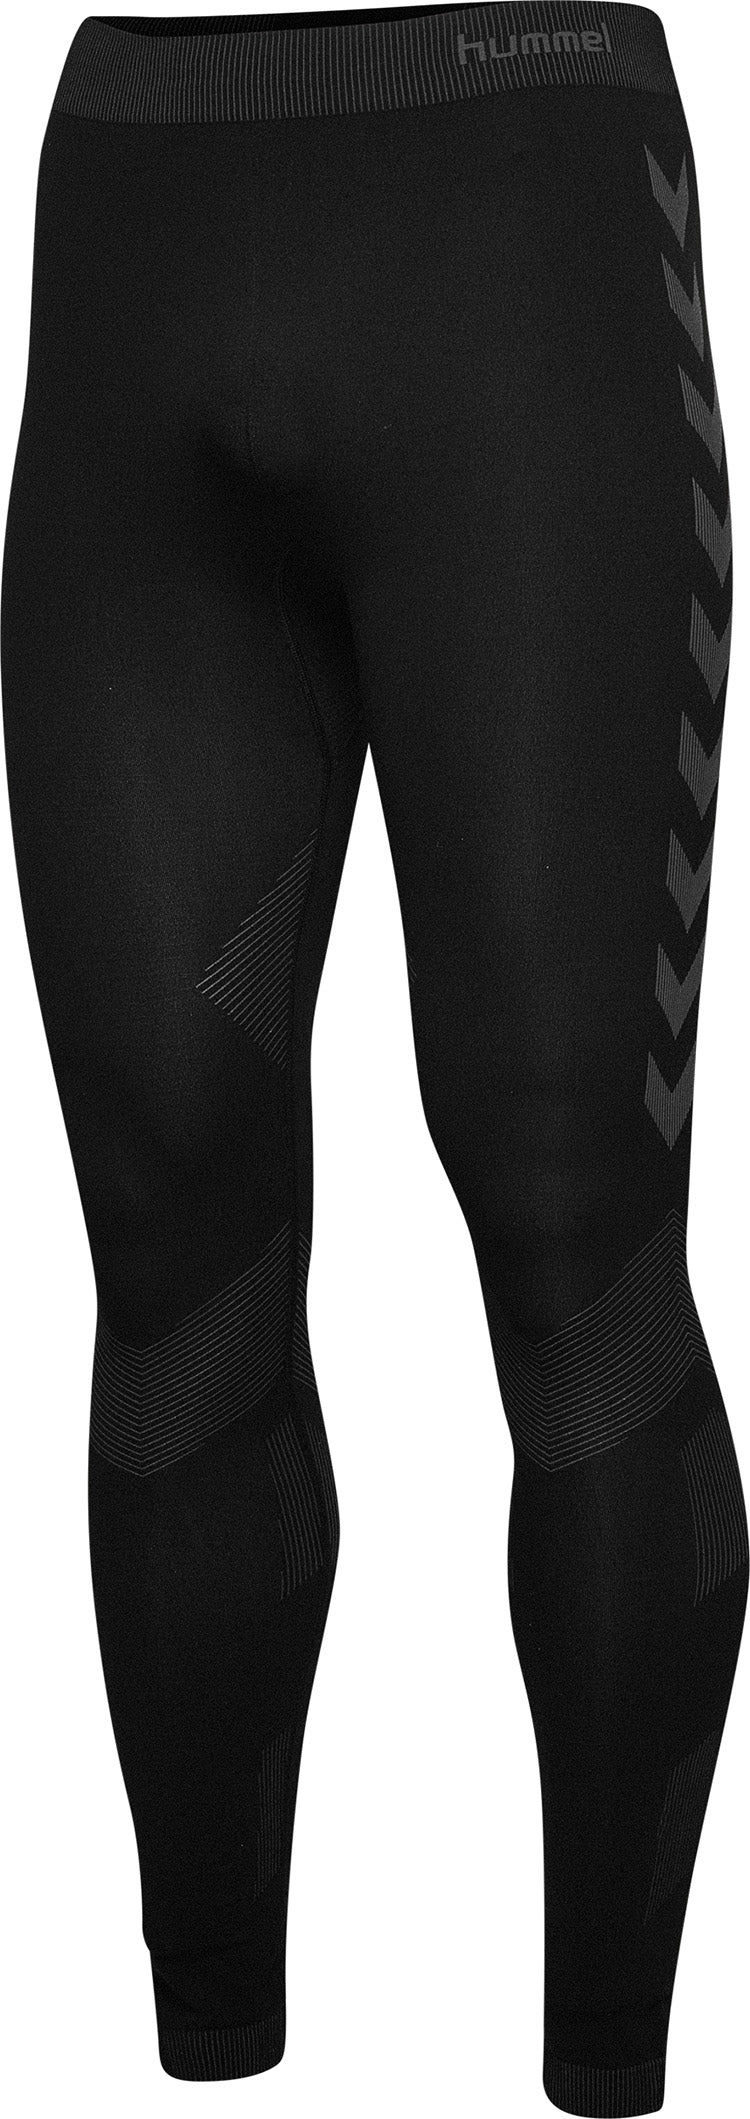 hummel First Seamless Tights-Soccer Command